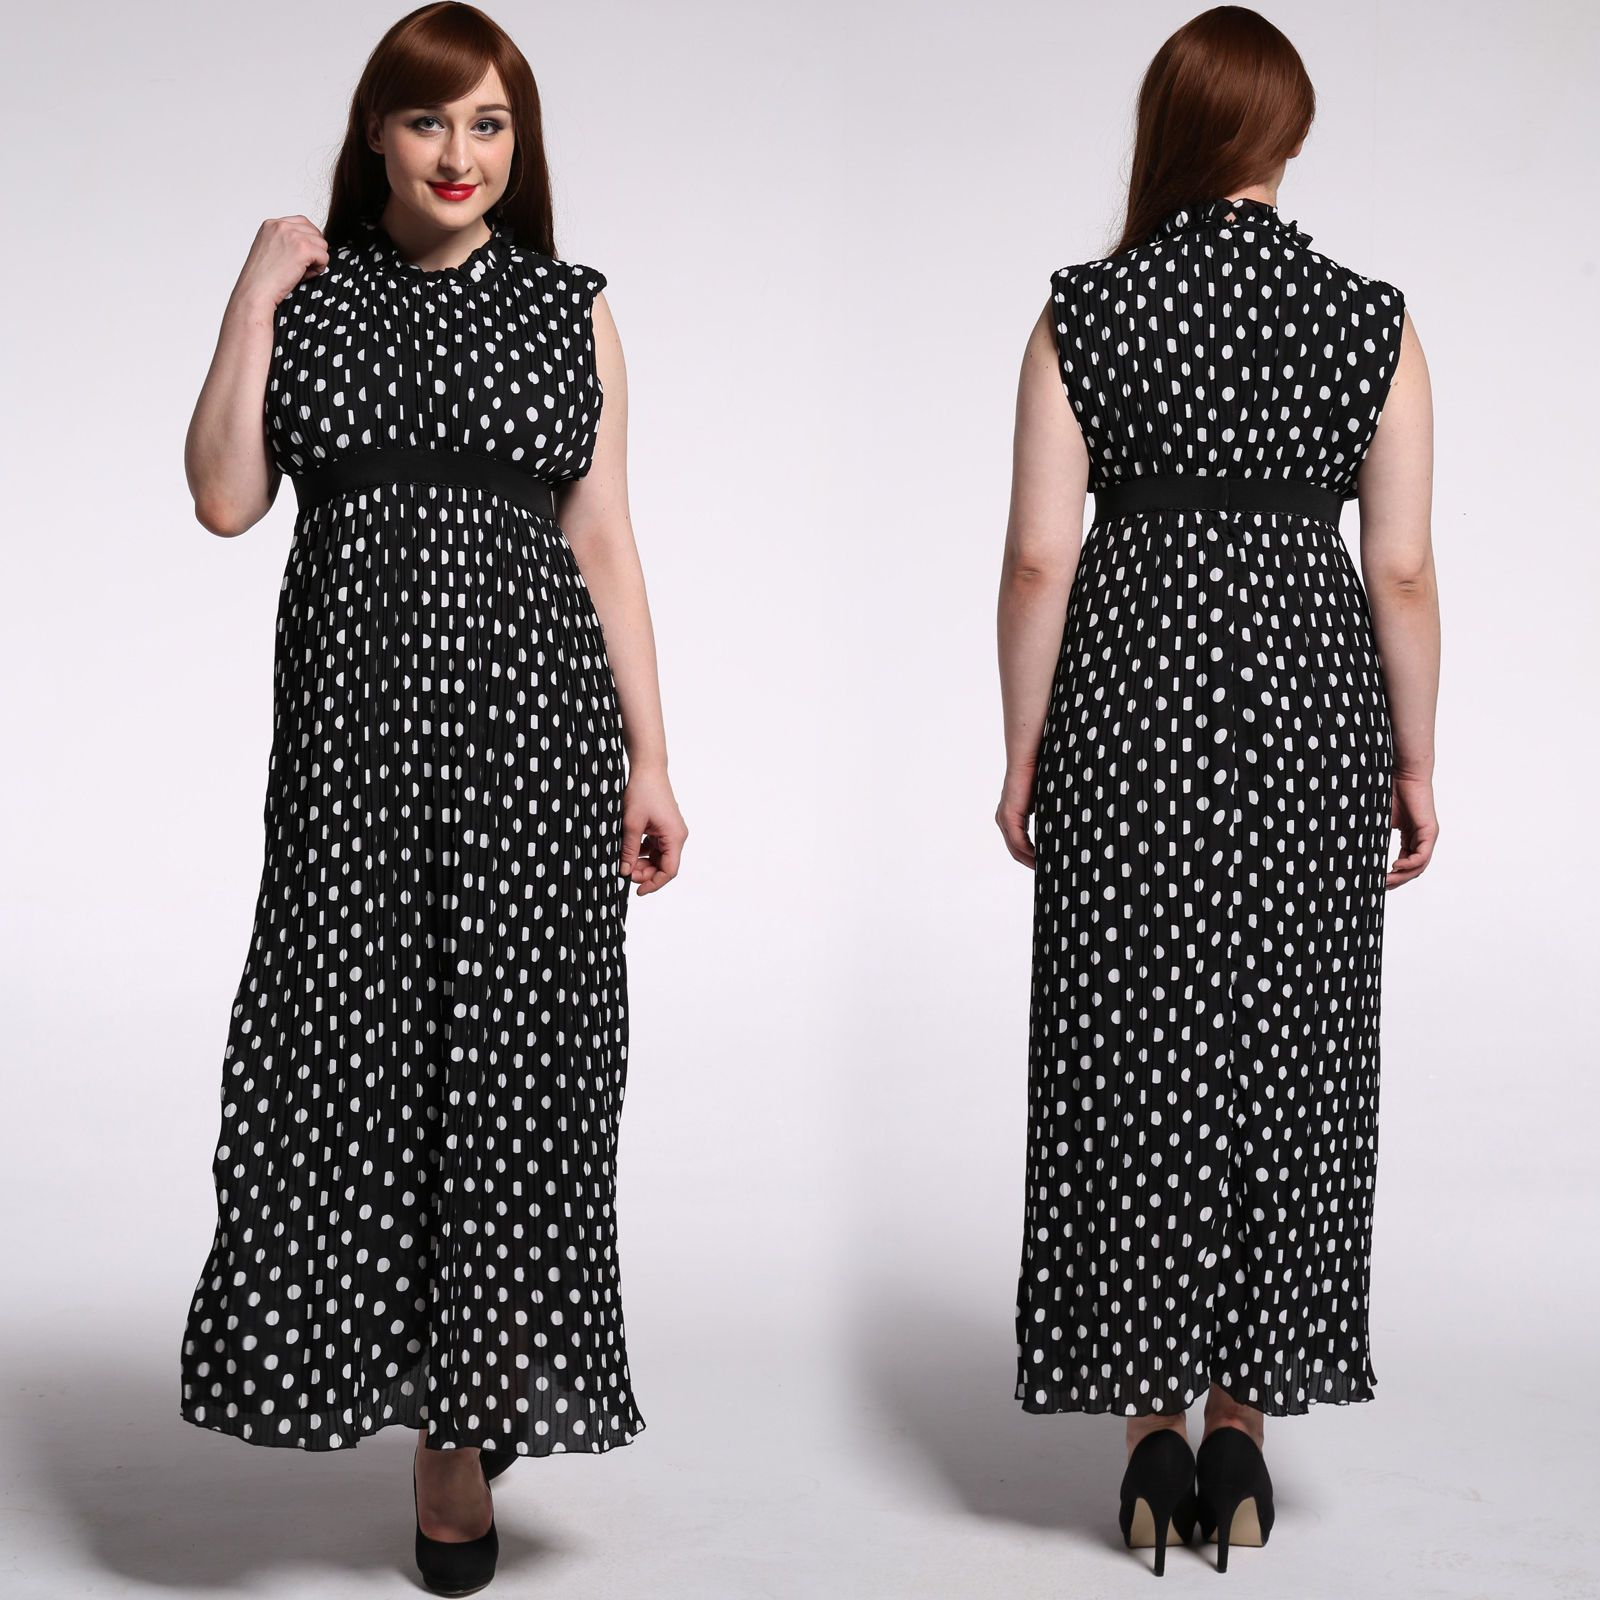 Lxl plus size womenus long dress polka dot pleated everyday party